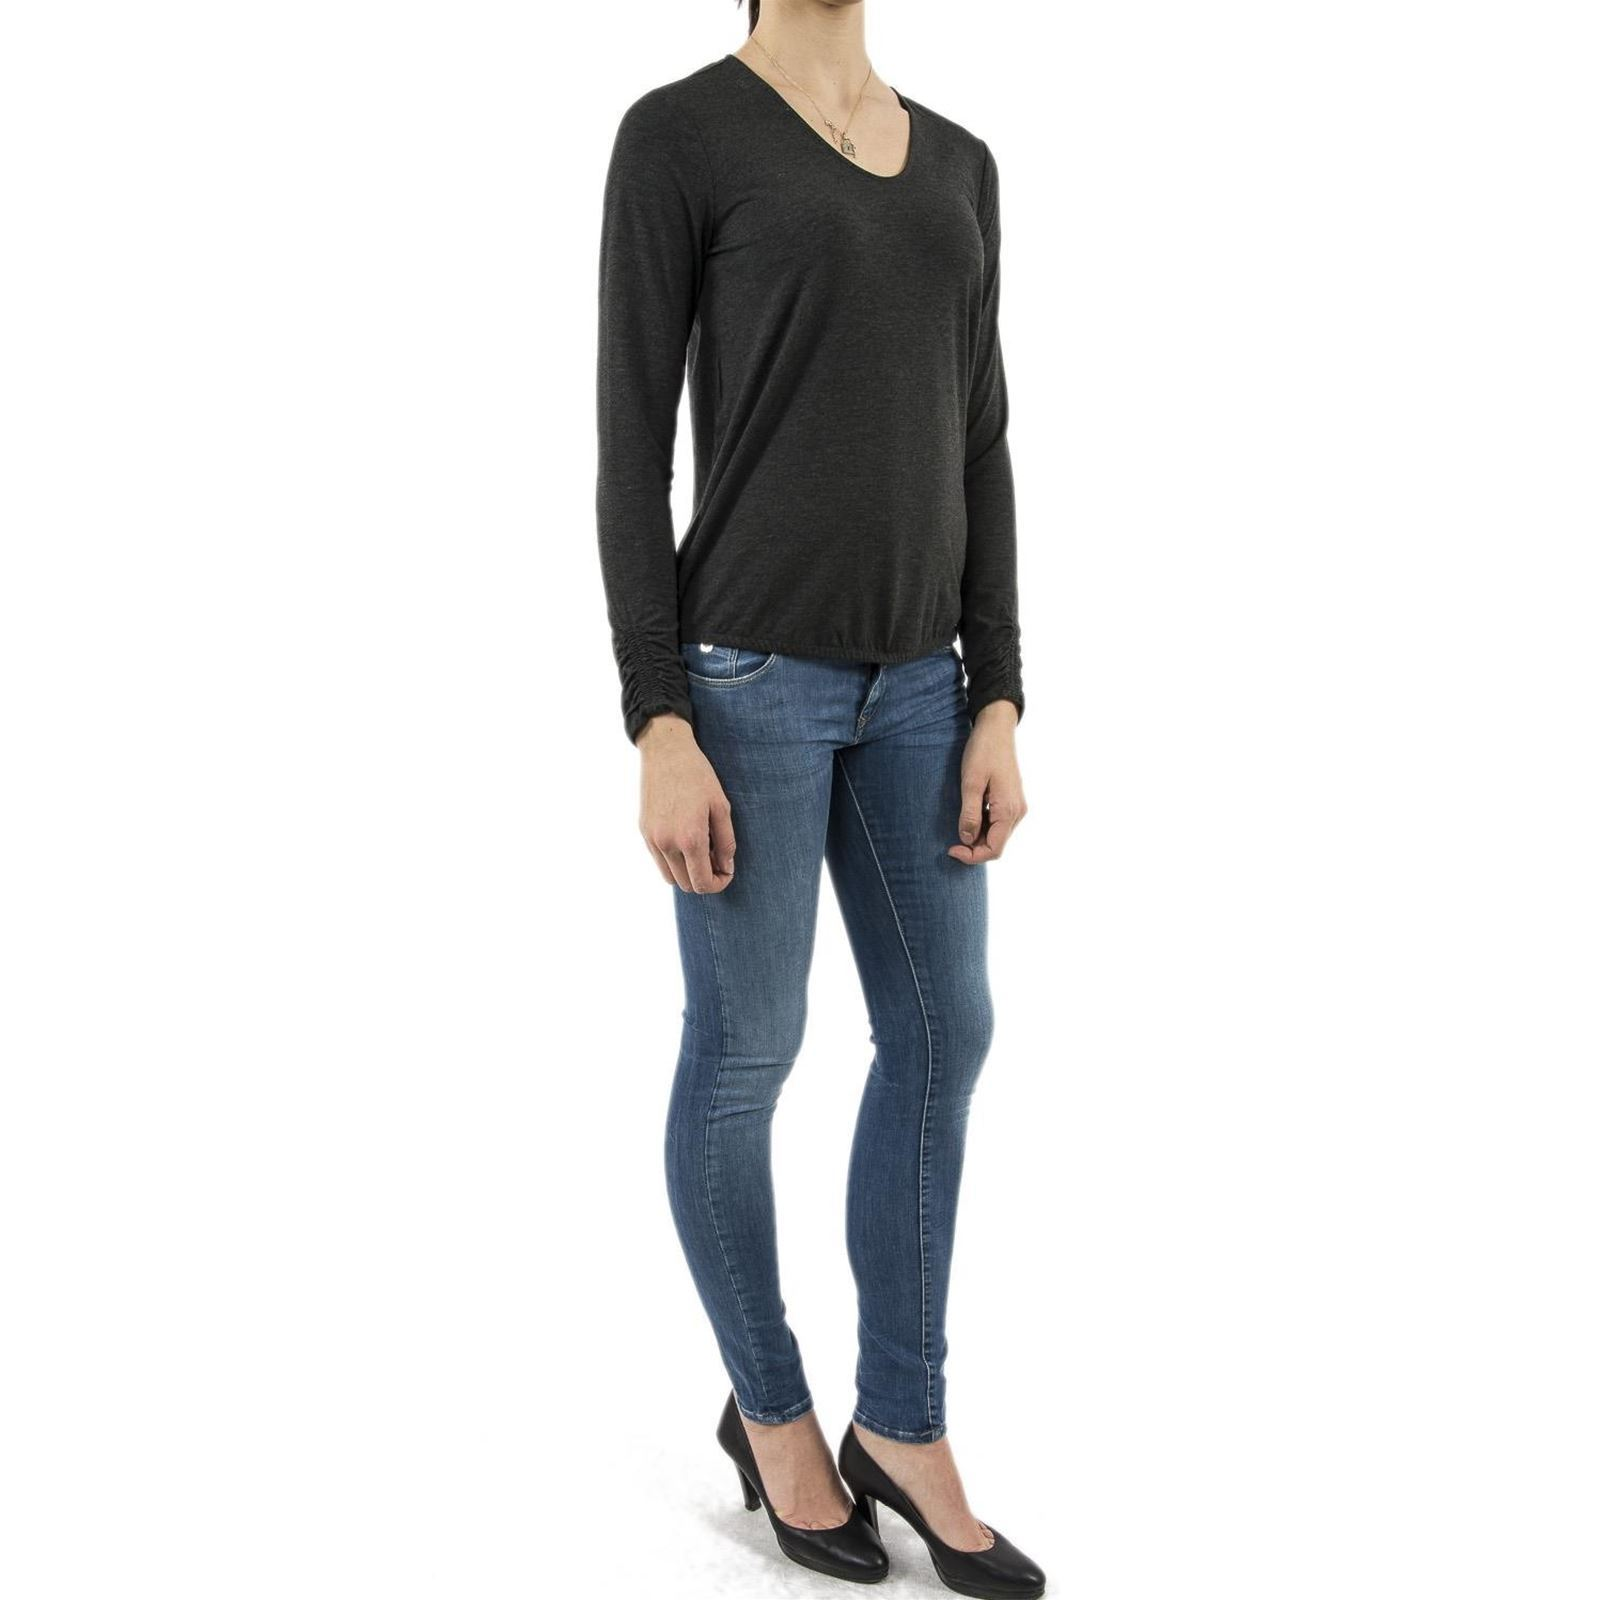 LonguesGris Chemise Femme One Street Manches V H2WE9ID